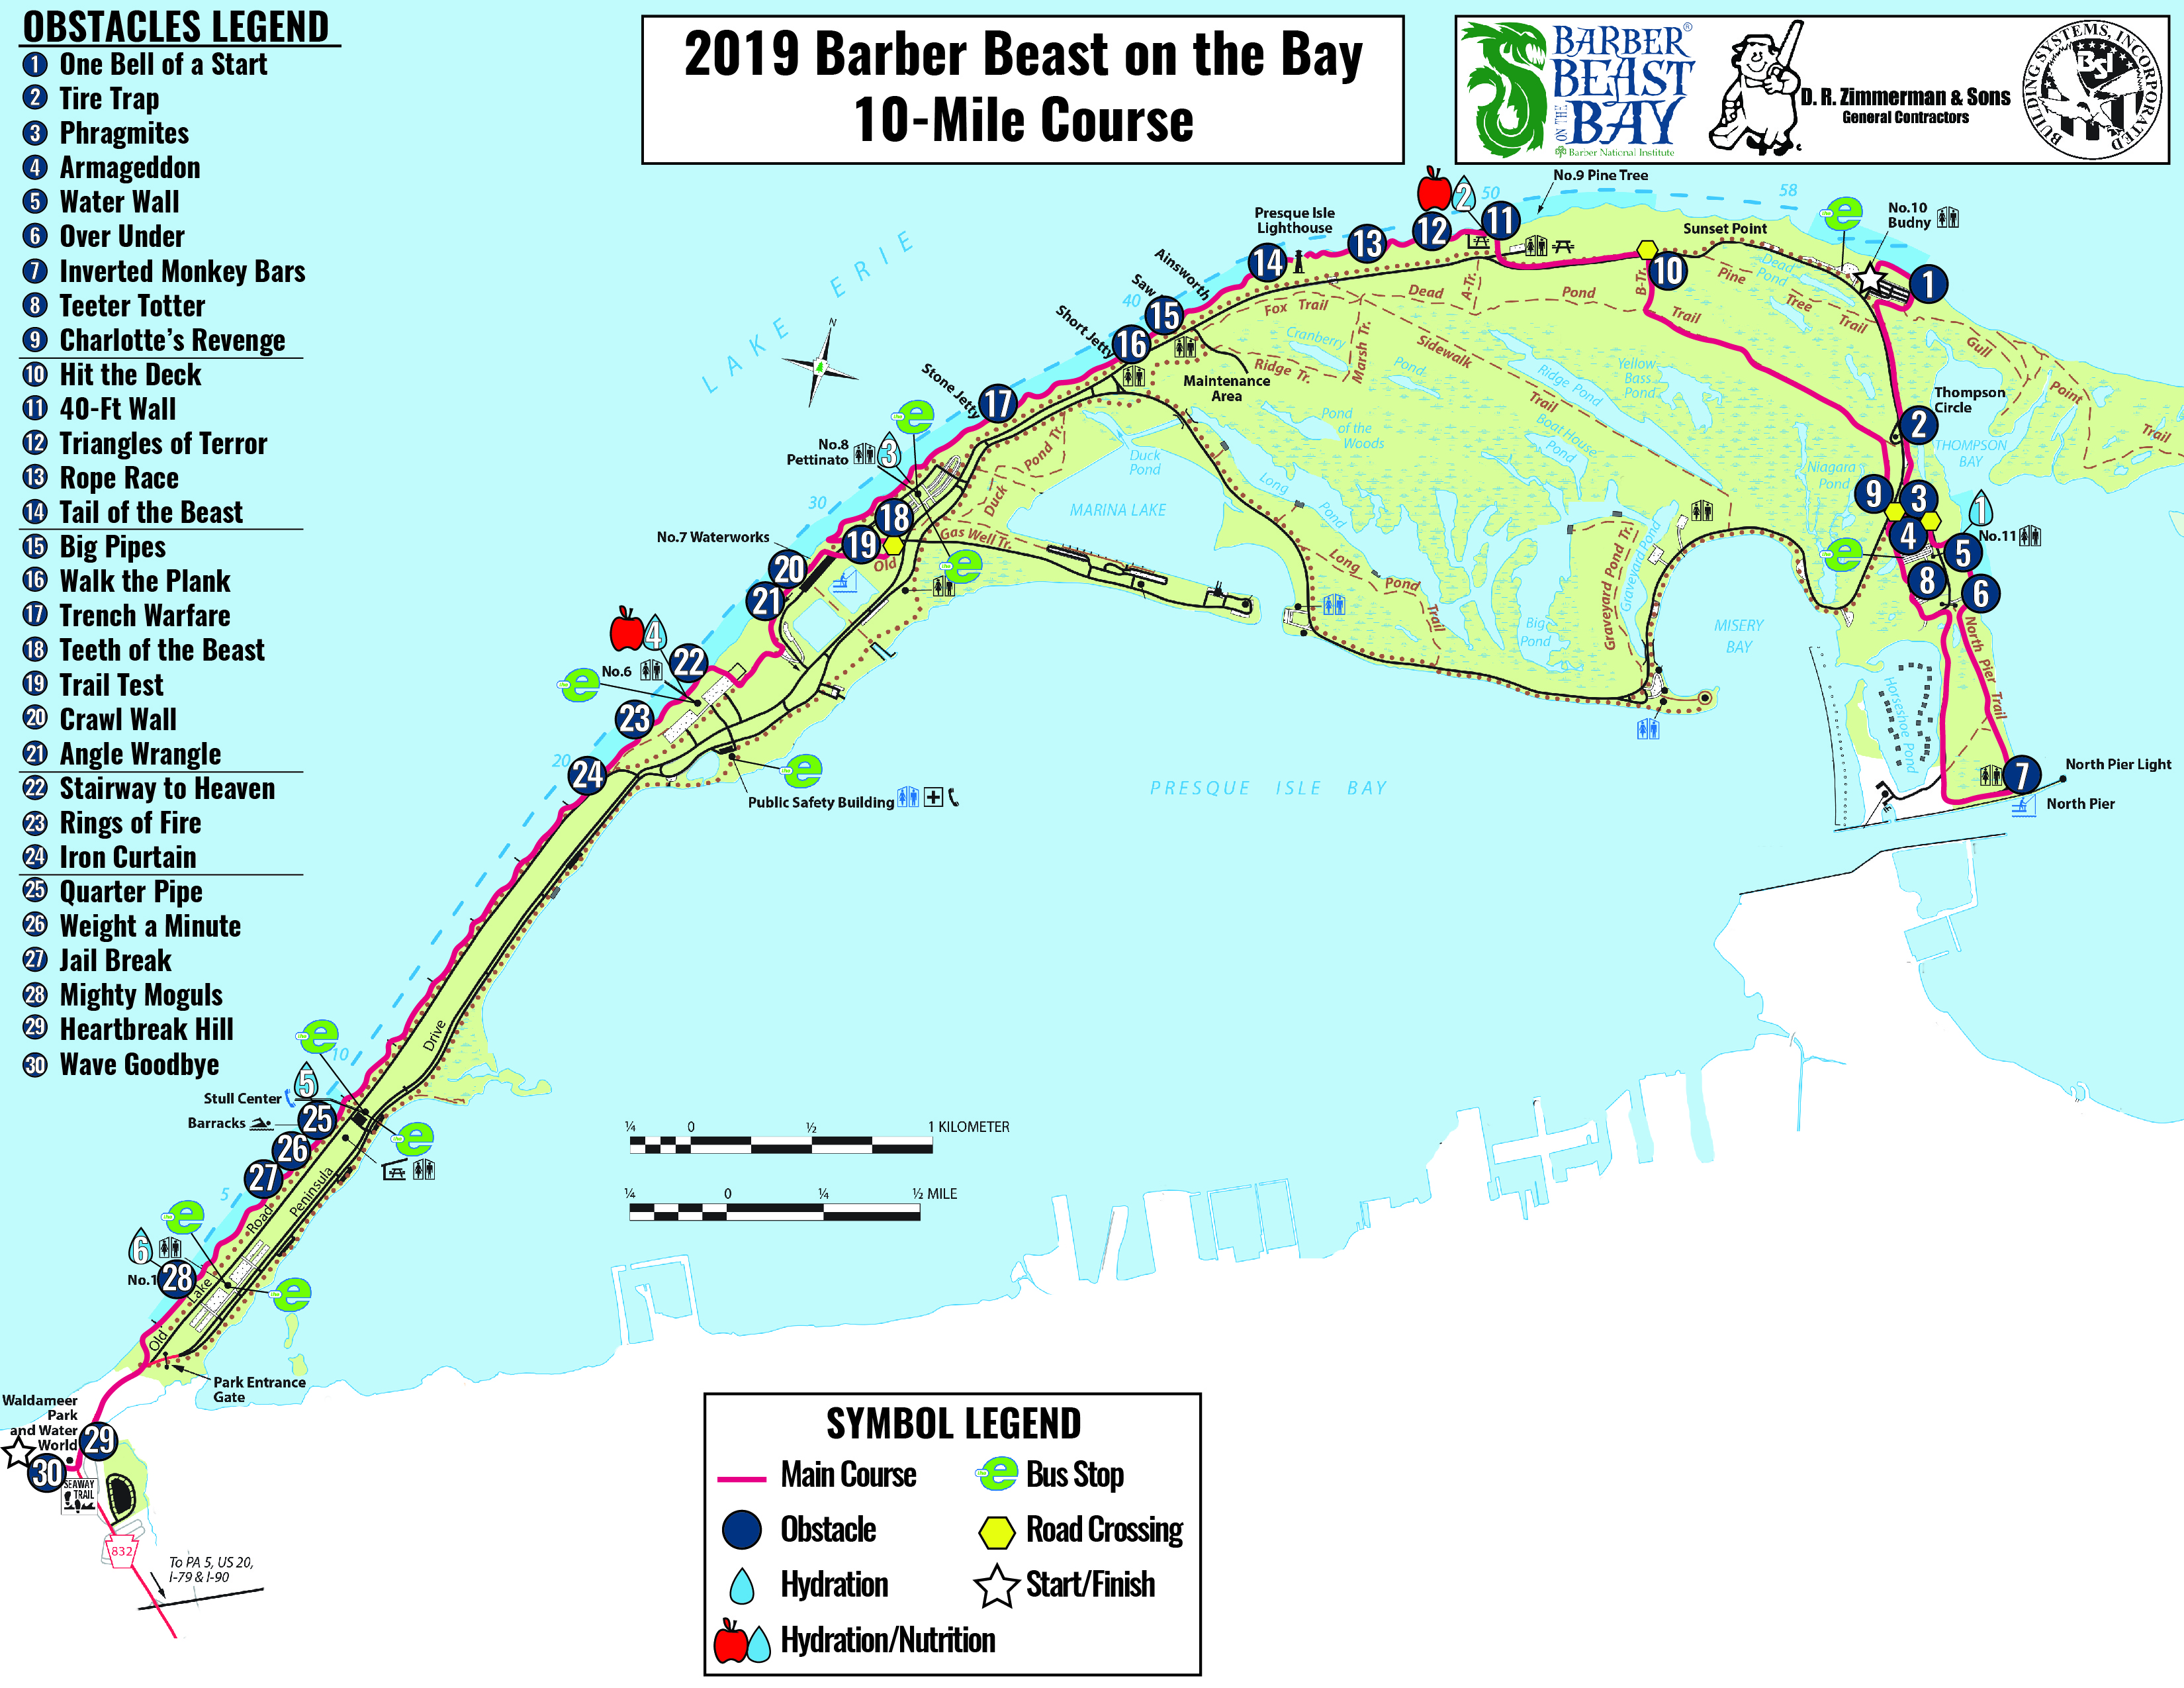 2019 Barber Beast on the Bay 10 Mile Course Map